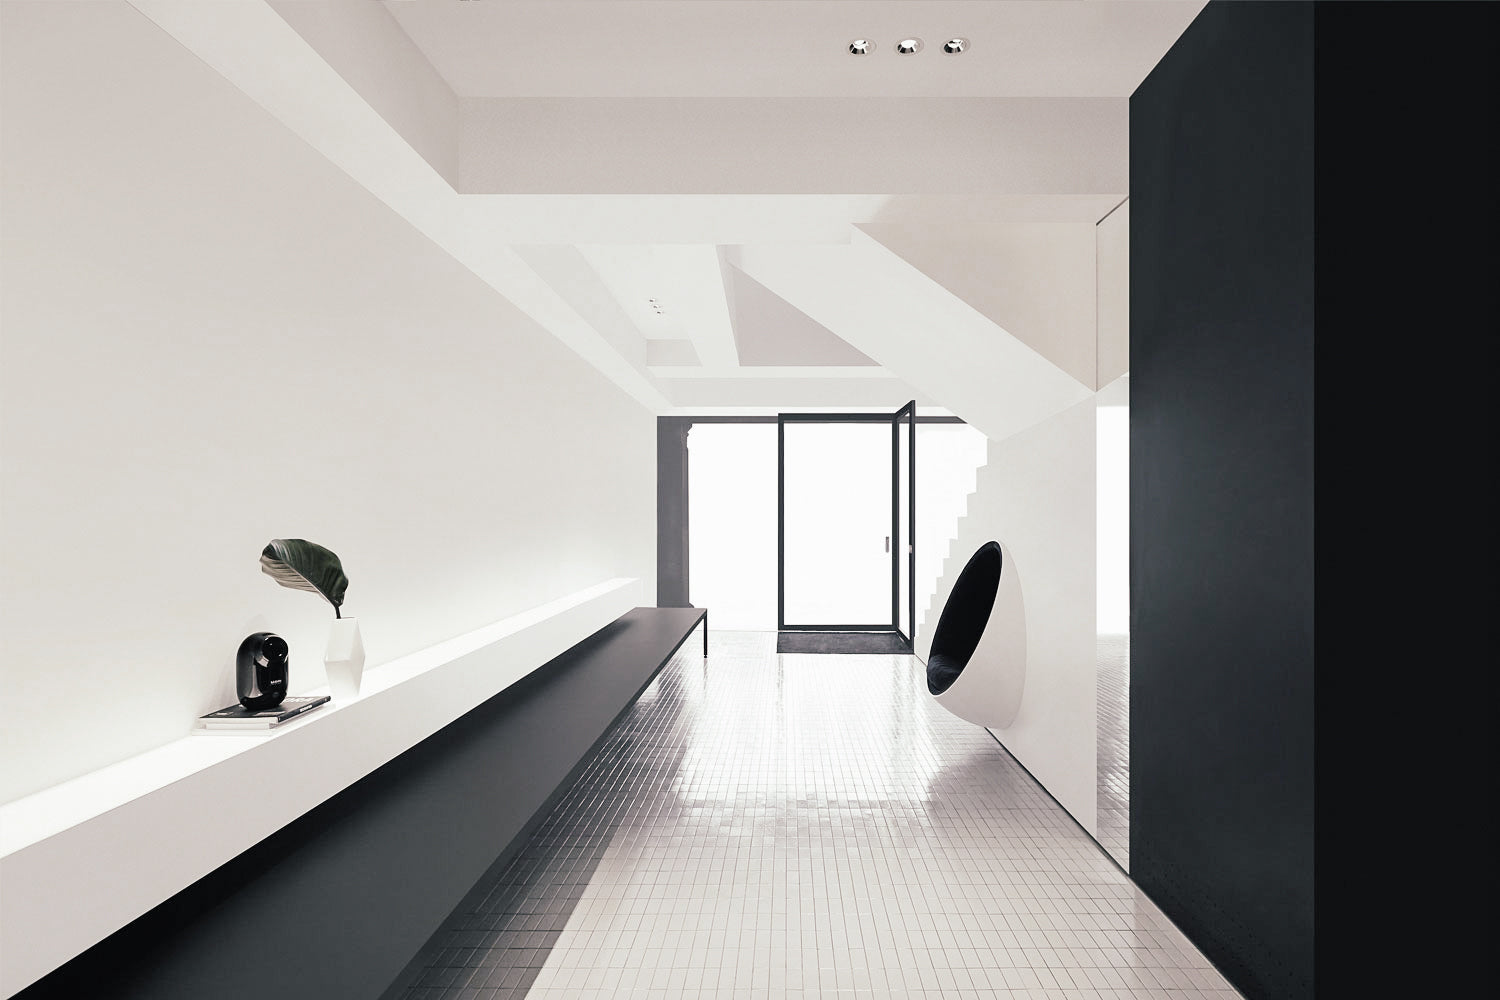 """<img src=""""//cdn.shopify.com/s/files/1/1158/6890/files/OwnMuse-HotelMonoSingapore-05.jpg?v=1506057590"""" alt=""""Mono the monochromatic black and white styled hotel in Singapore as featured on ownmuse.com"""" />"""